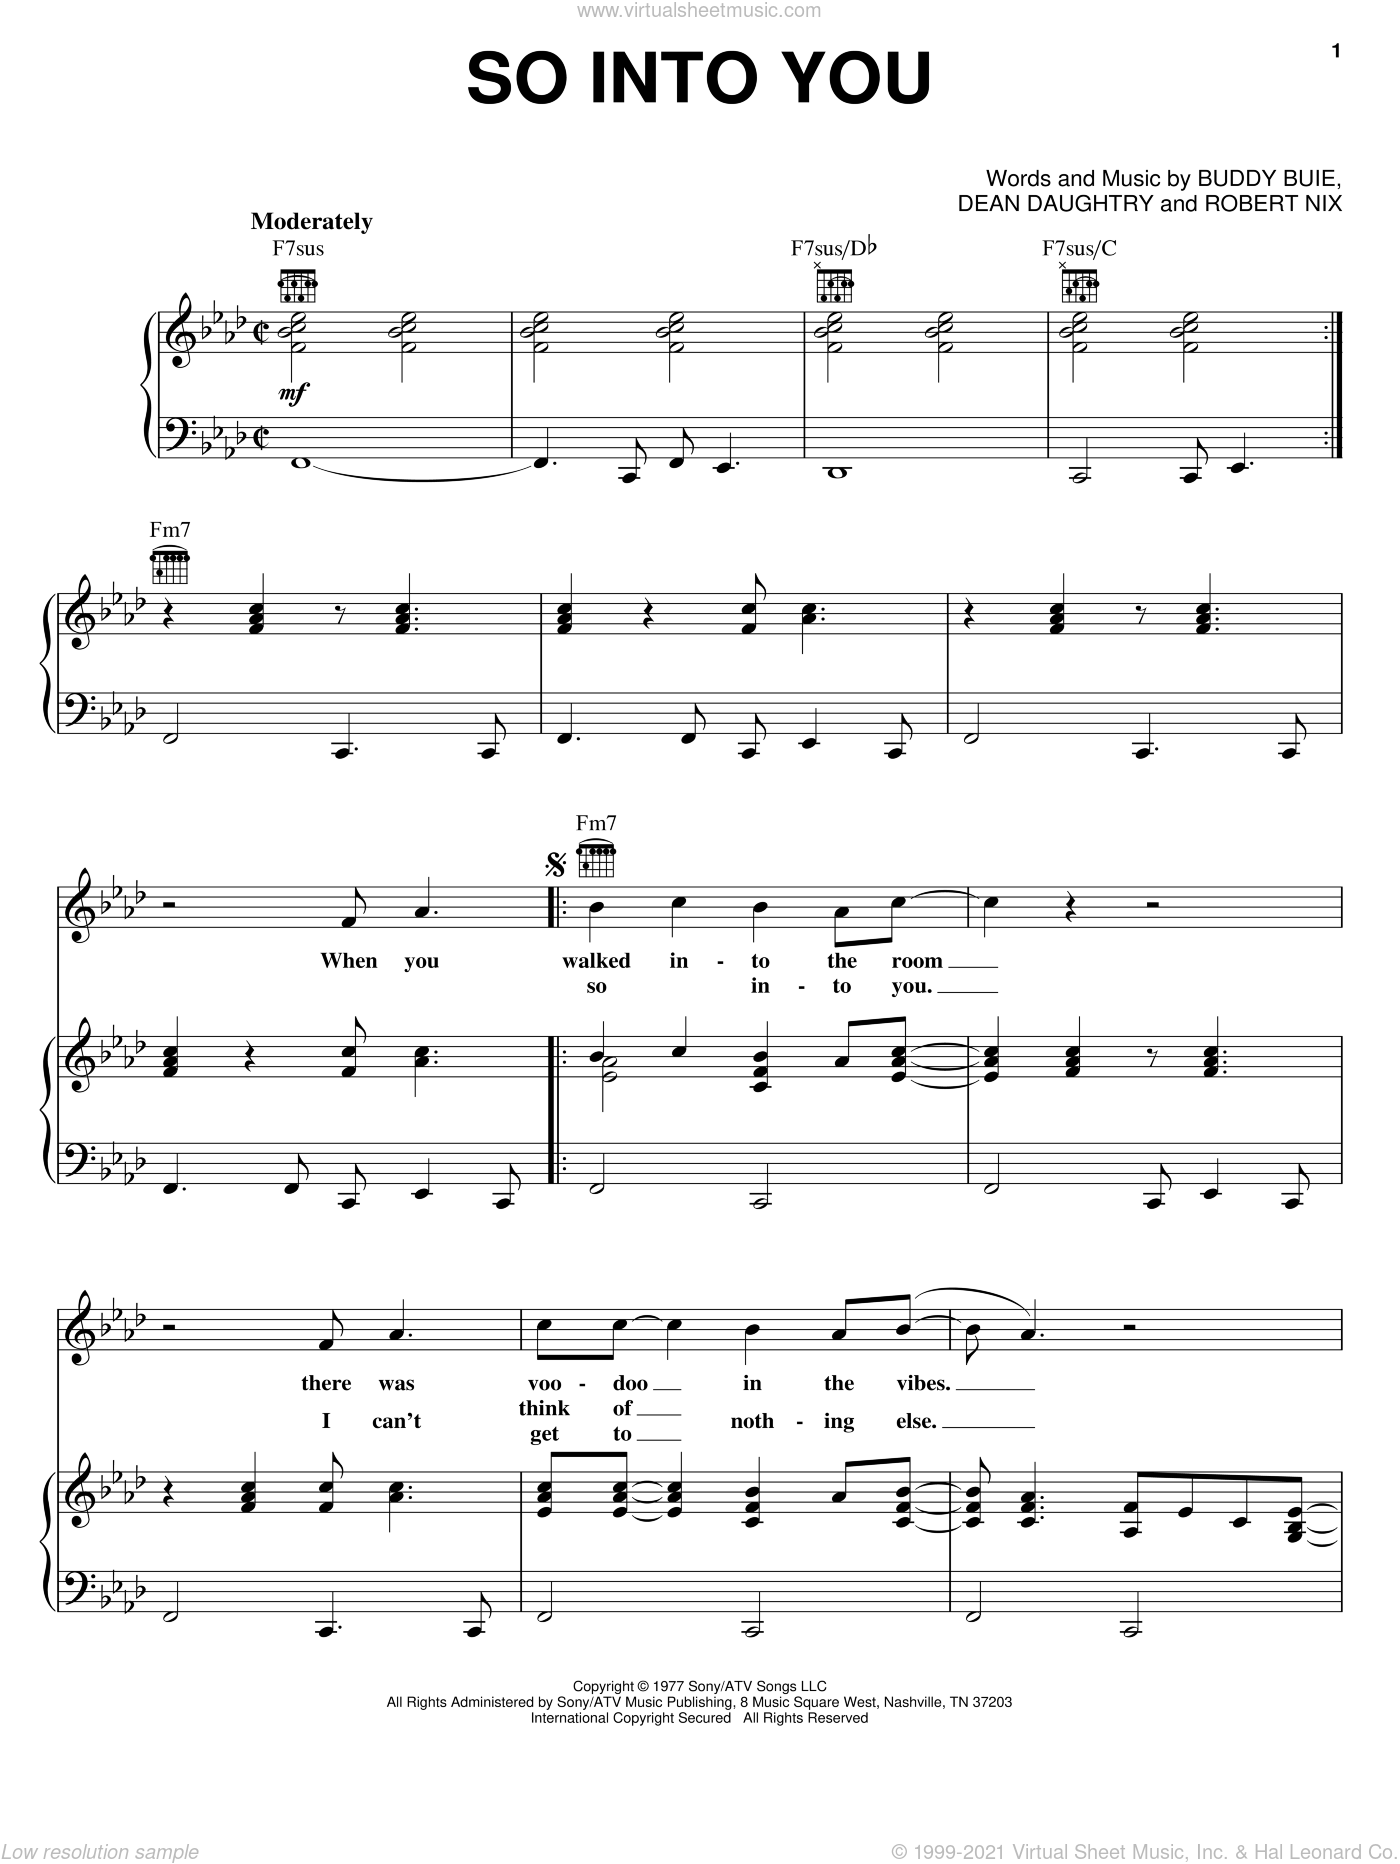 So Into You sheet music for voice, piano or guitar by Atlanta Rhythm Section, Buddy Buie, Dean Daughtry and Robert Nix, intermediate skill level